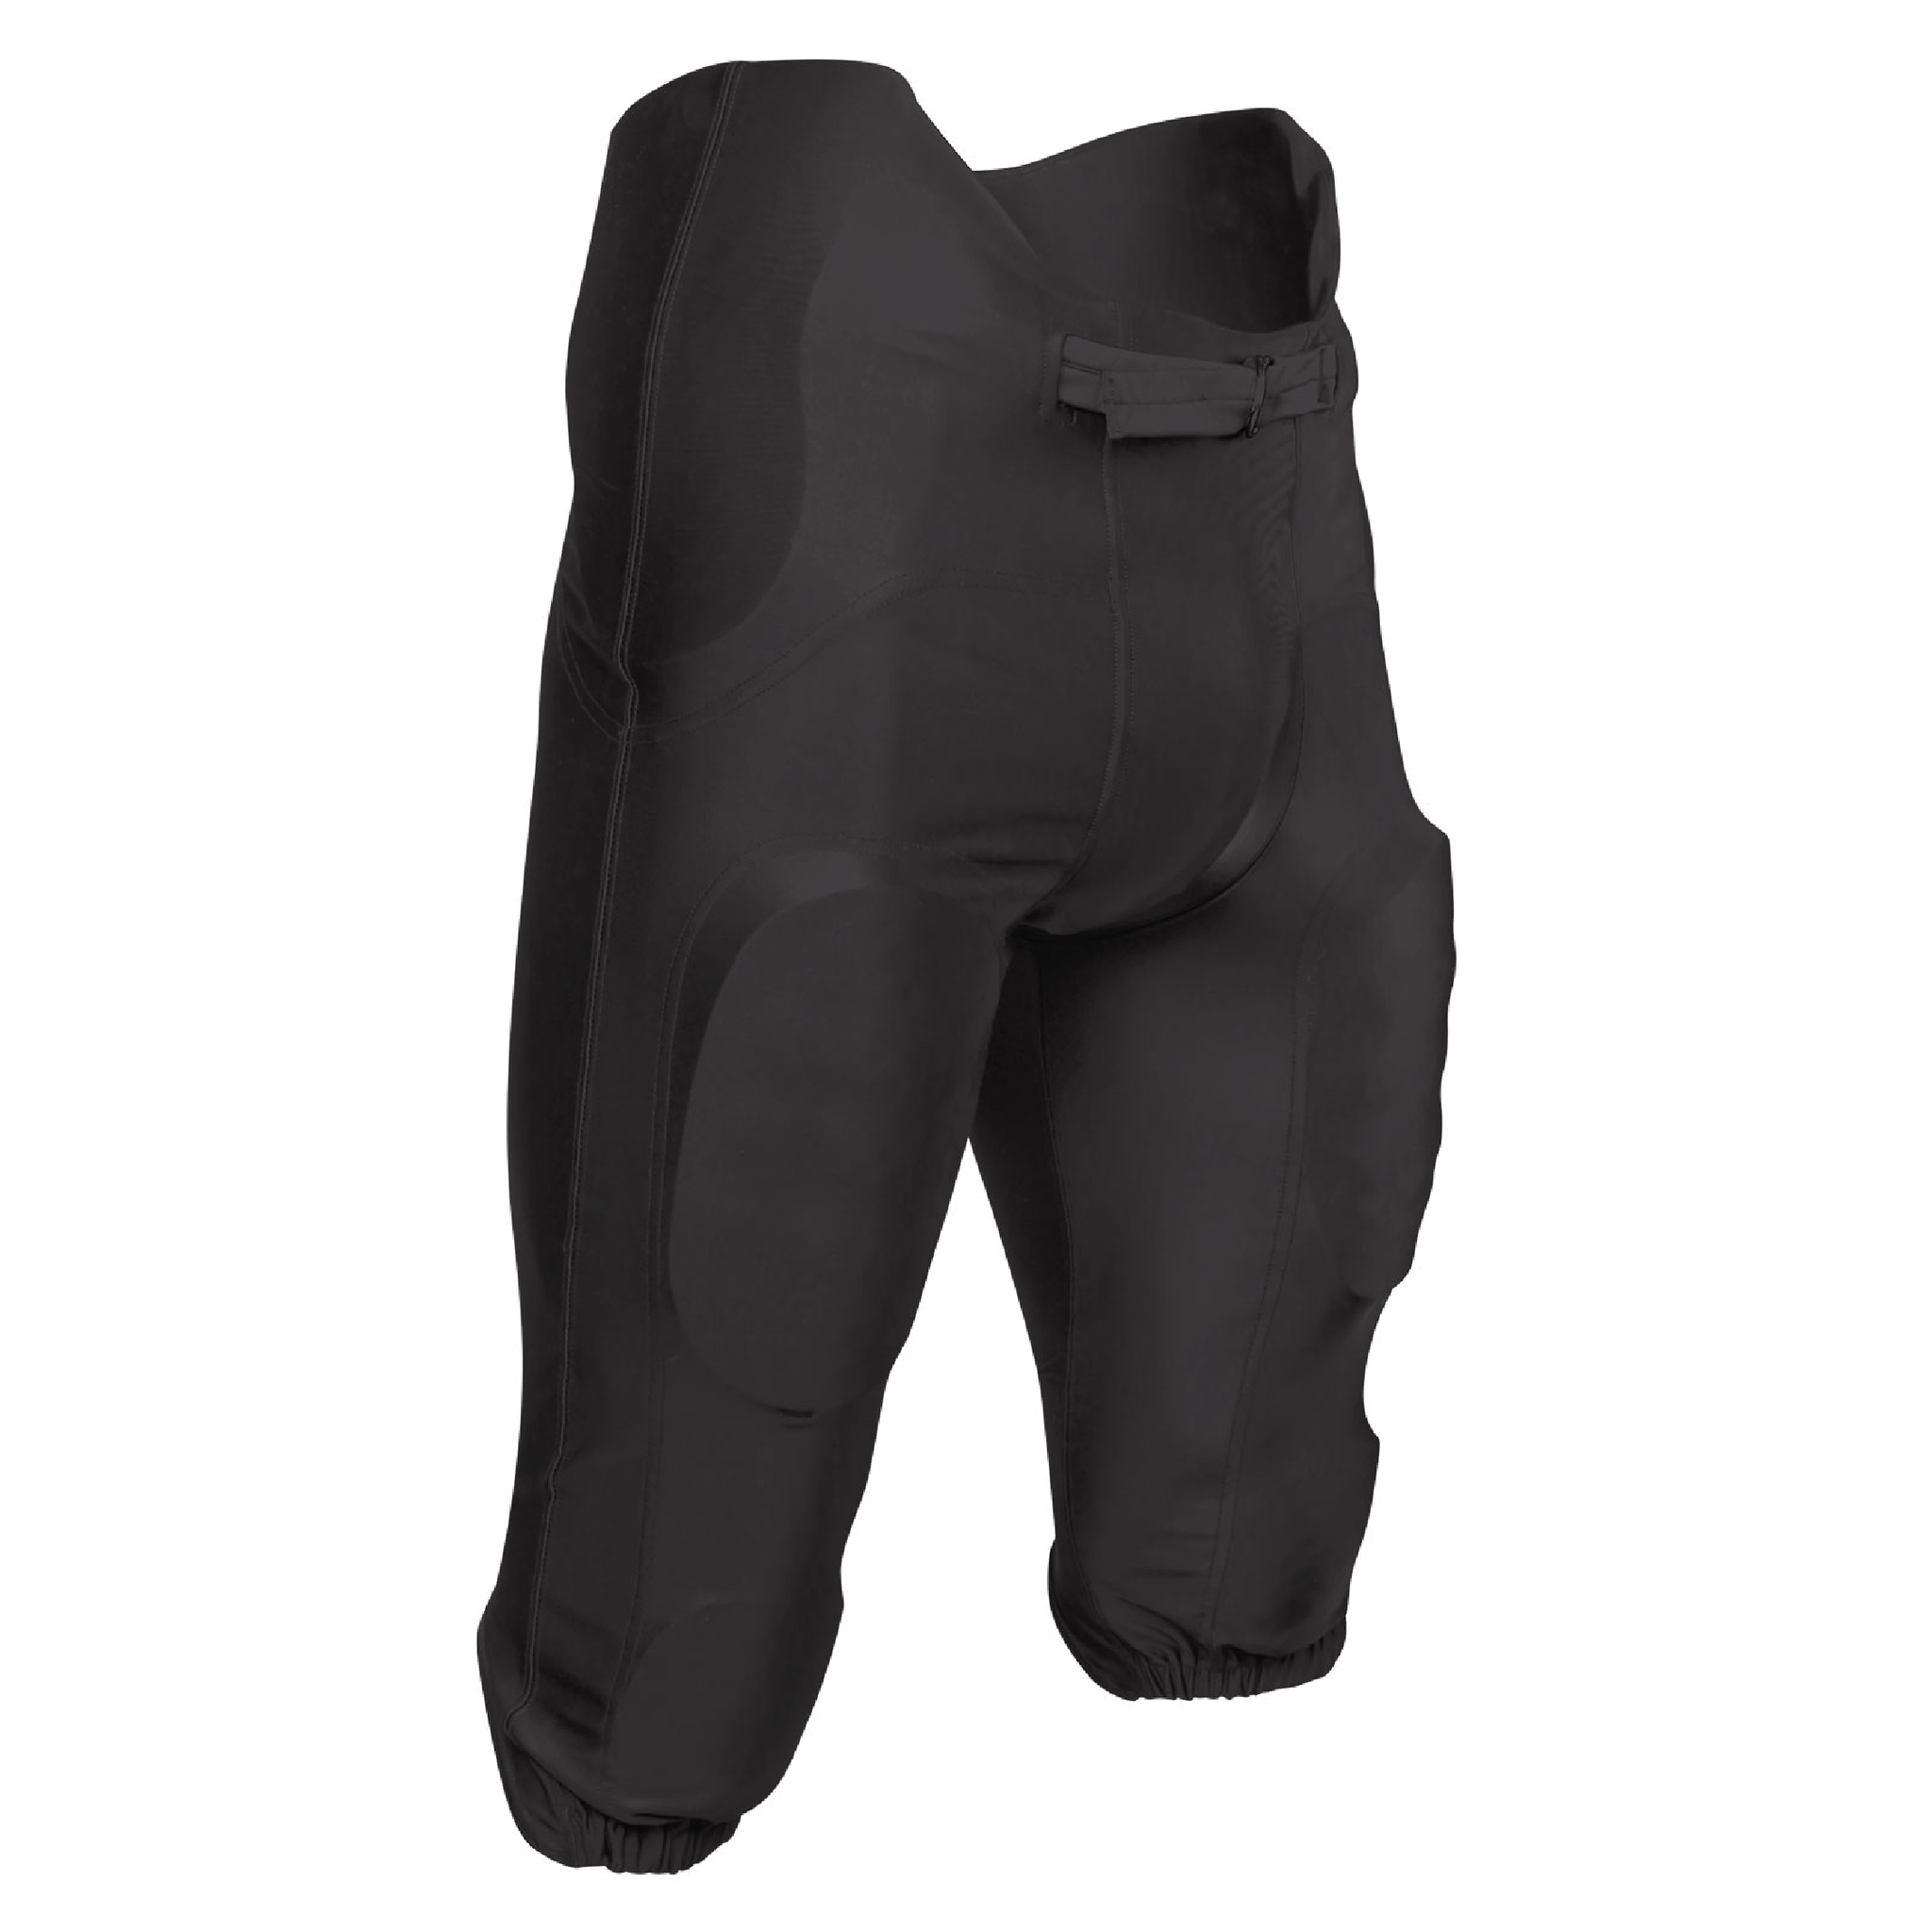 Champro Bootleg 2 Integrated Game Pant